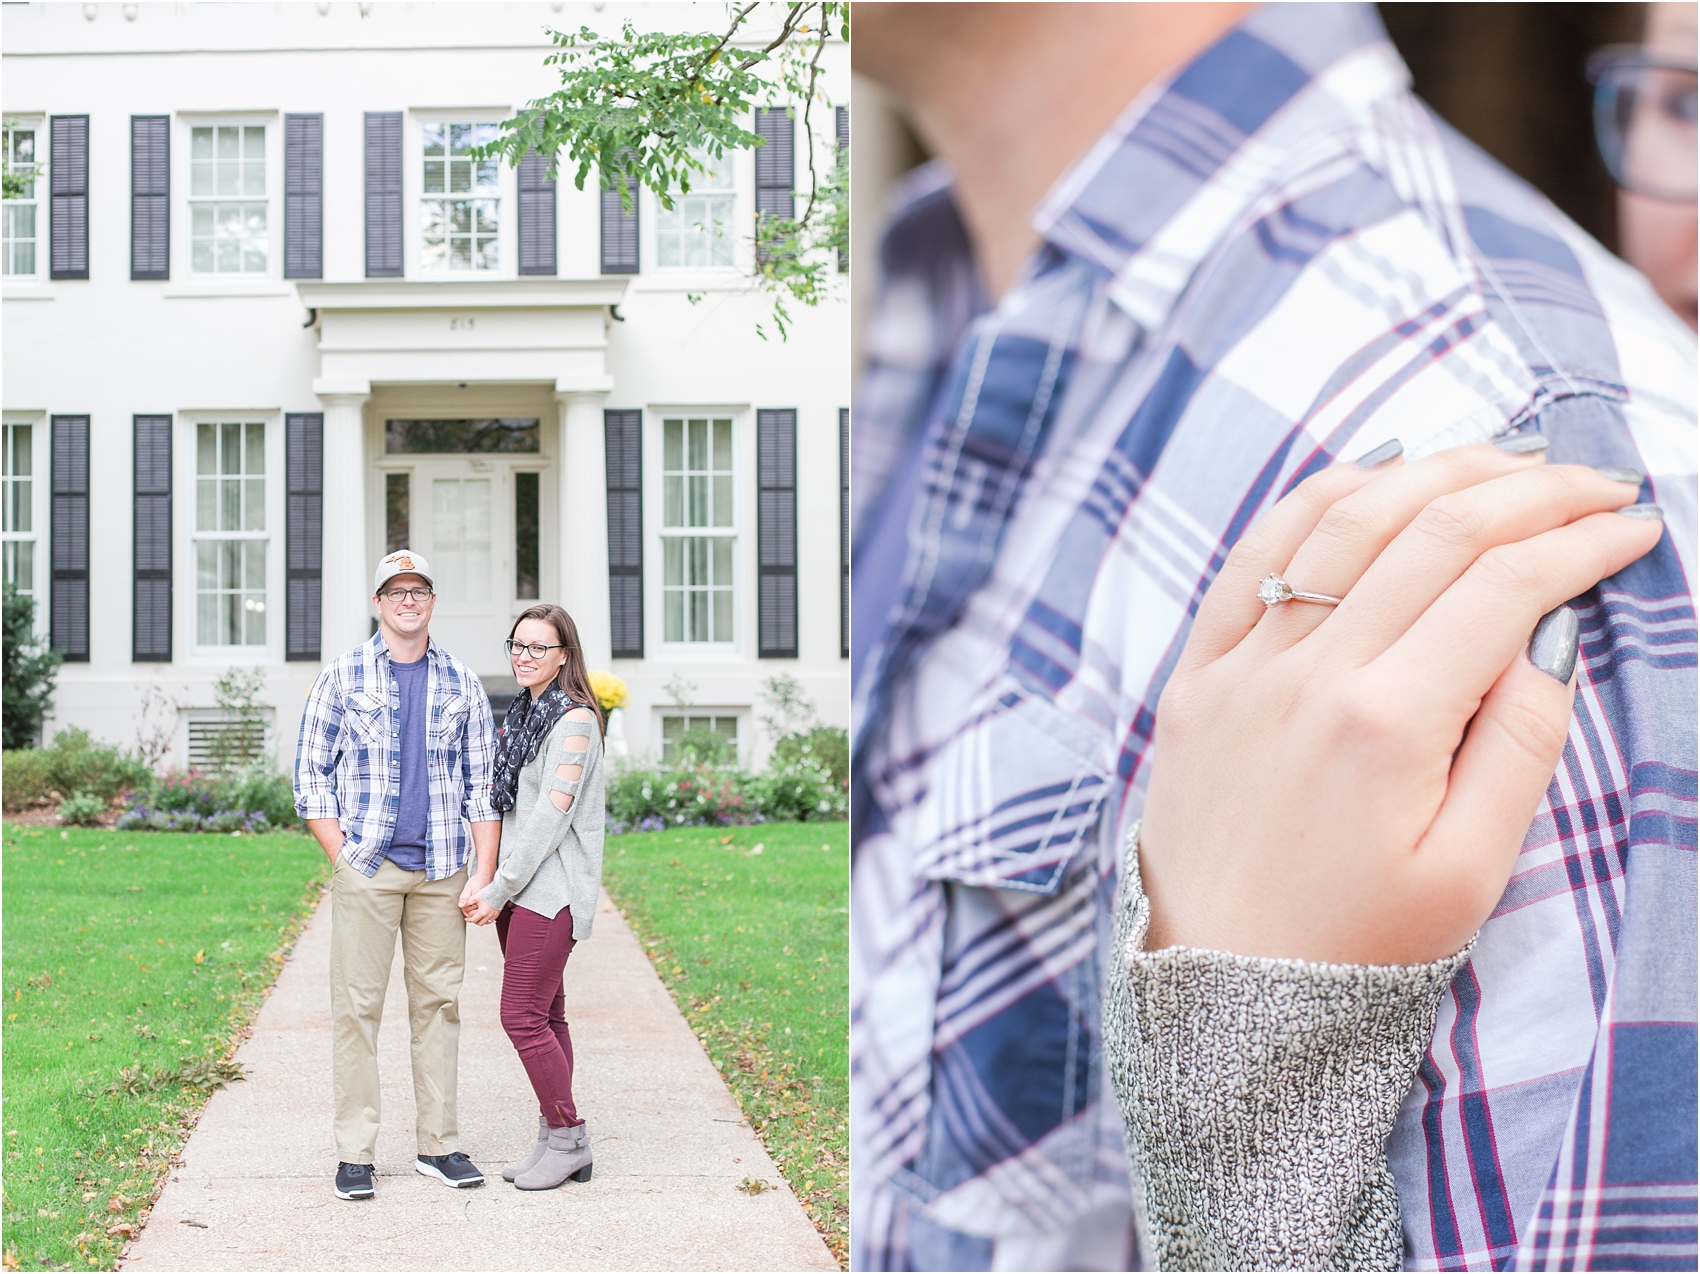 classic-fall-engagement-photos-at-the-university-of-michigan-in-ann-arbor-mi-by-courtney-carolyn-photography_0005.jpg